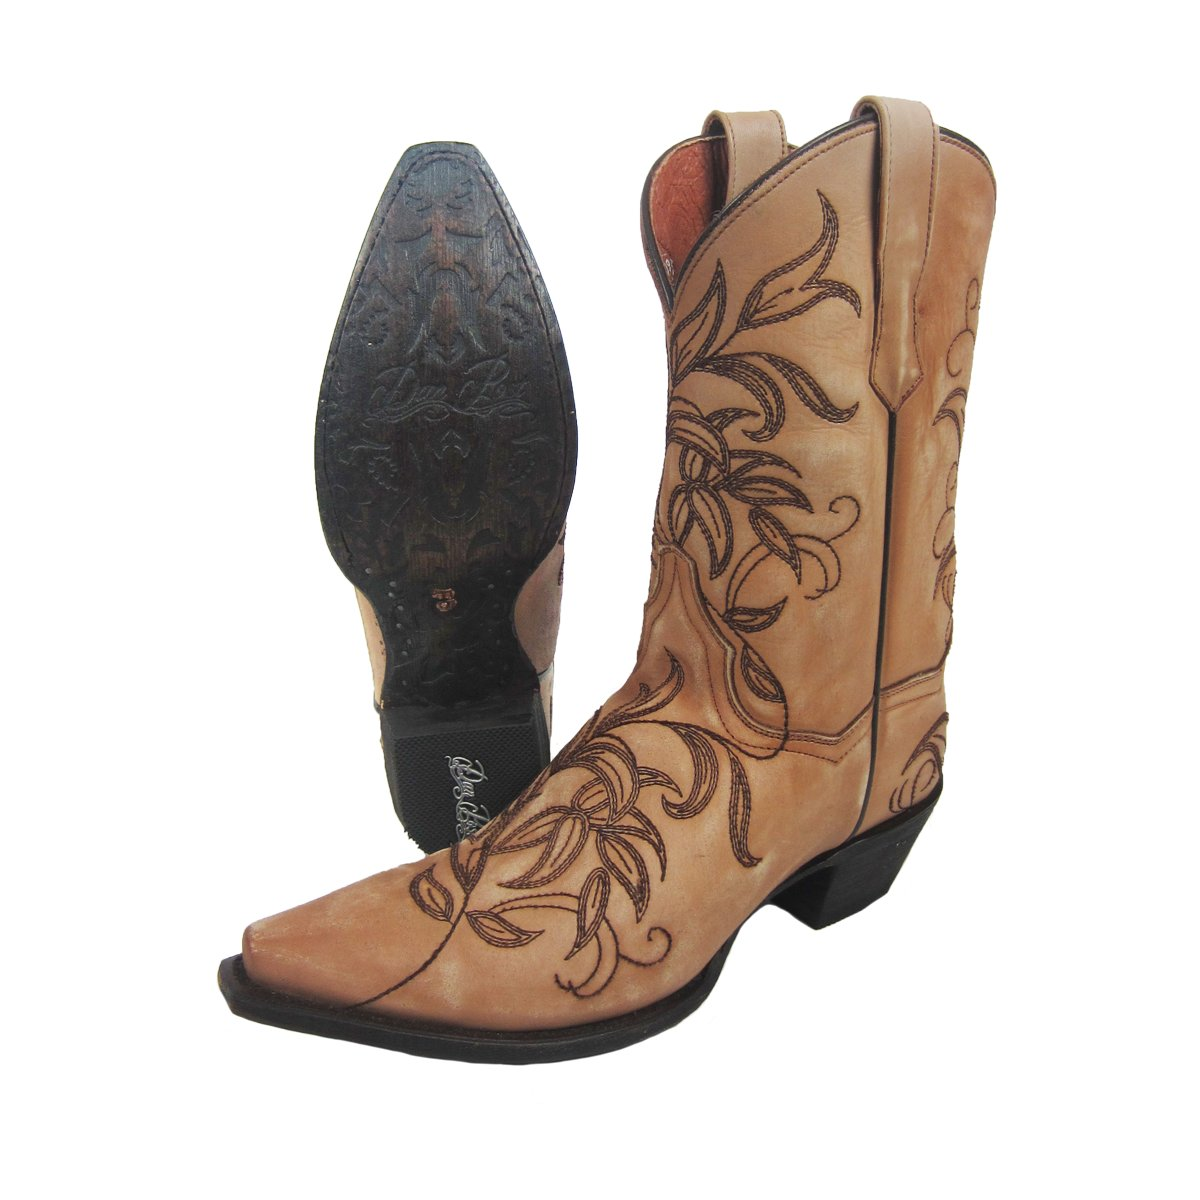 205d6f8de1a Details about NEW Dan Post Womens Nora Bone Pointed Leather Cowgirl Western  Boot Size 9 DP3733